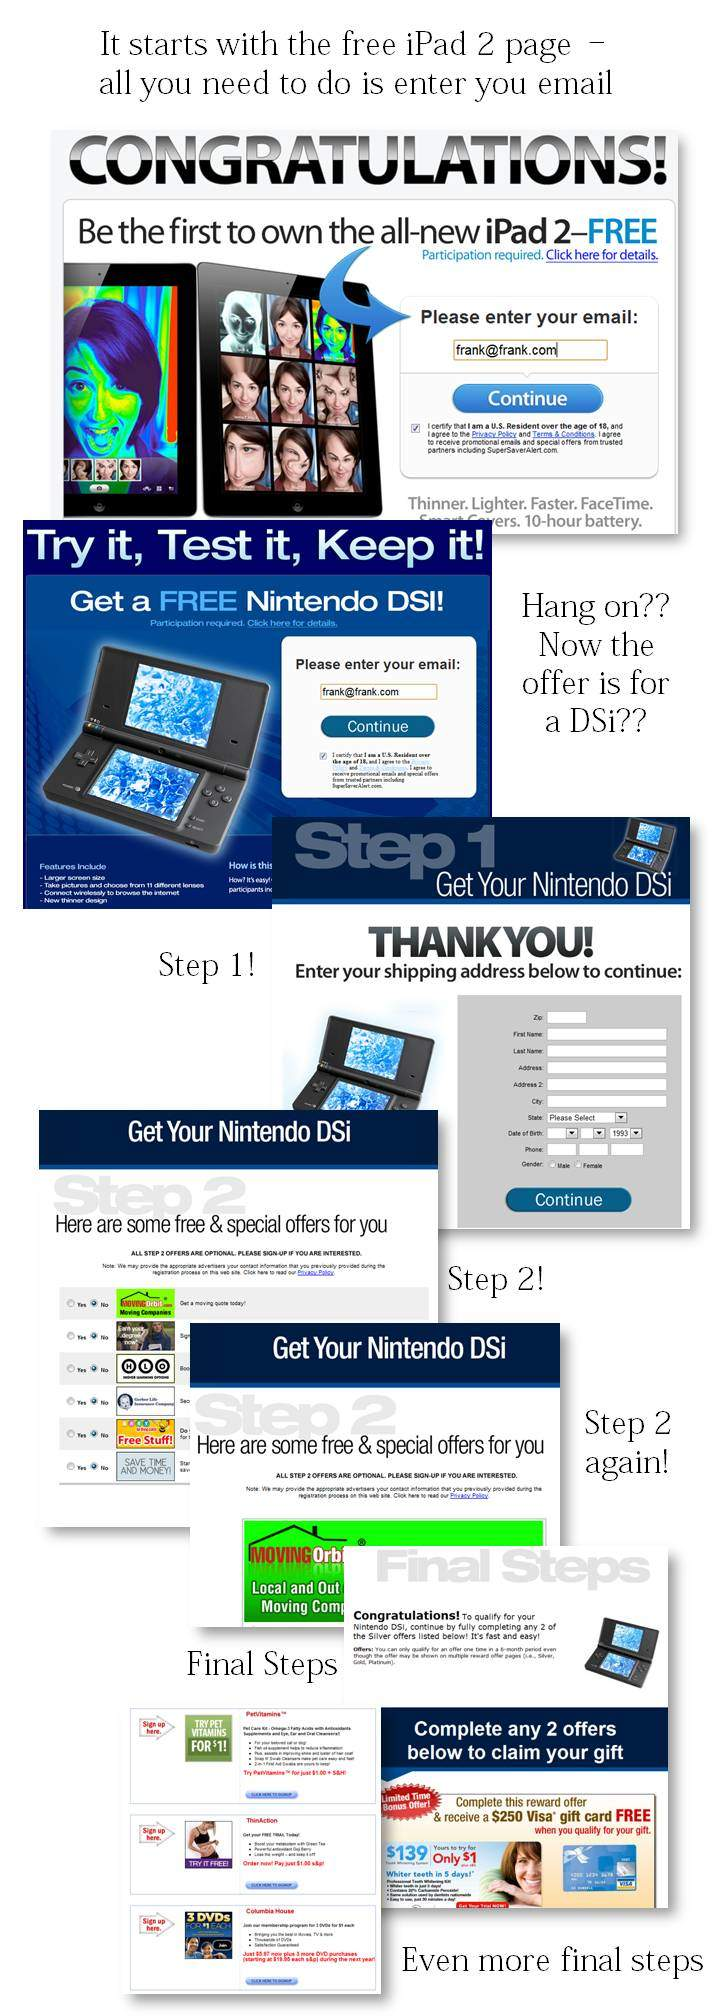 Avoid Affiliate Spam. Only Use the Emails of Your Contacts for What They Trusted You to - iPad example